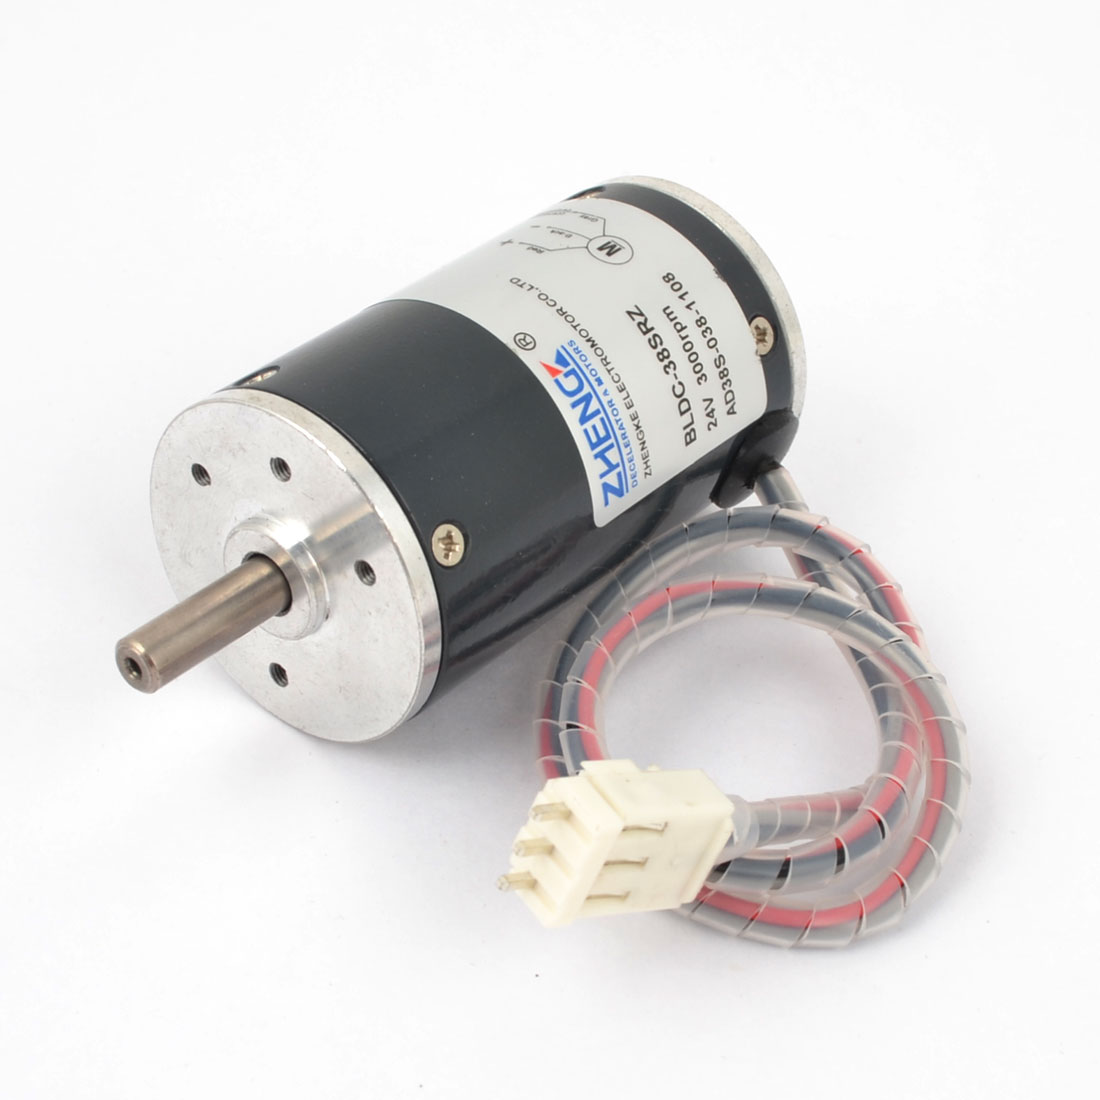 DC-24V-3000RPM-Speed-38mm-Diameter-Low-Noise-Brushless-Motor